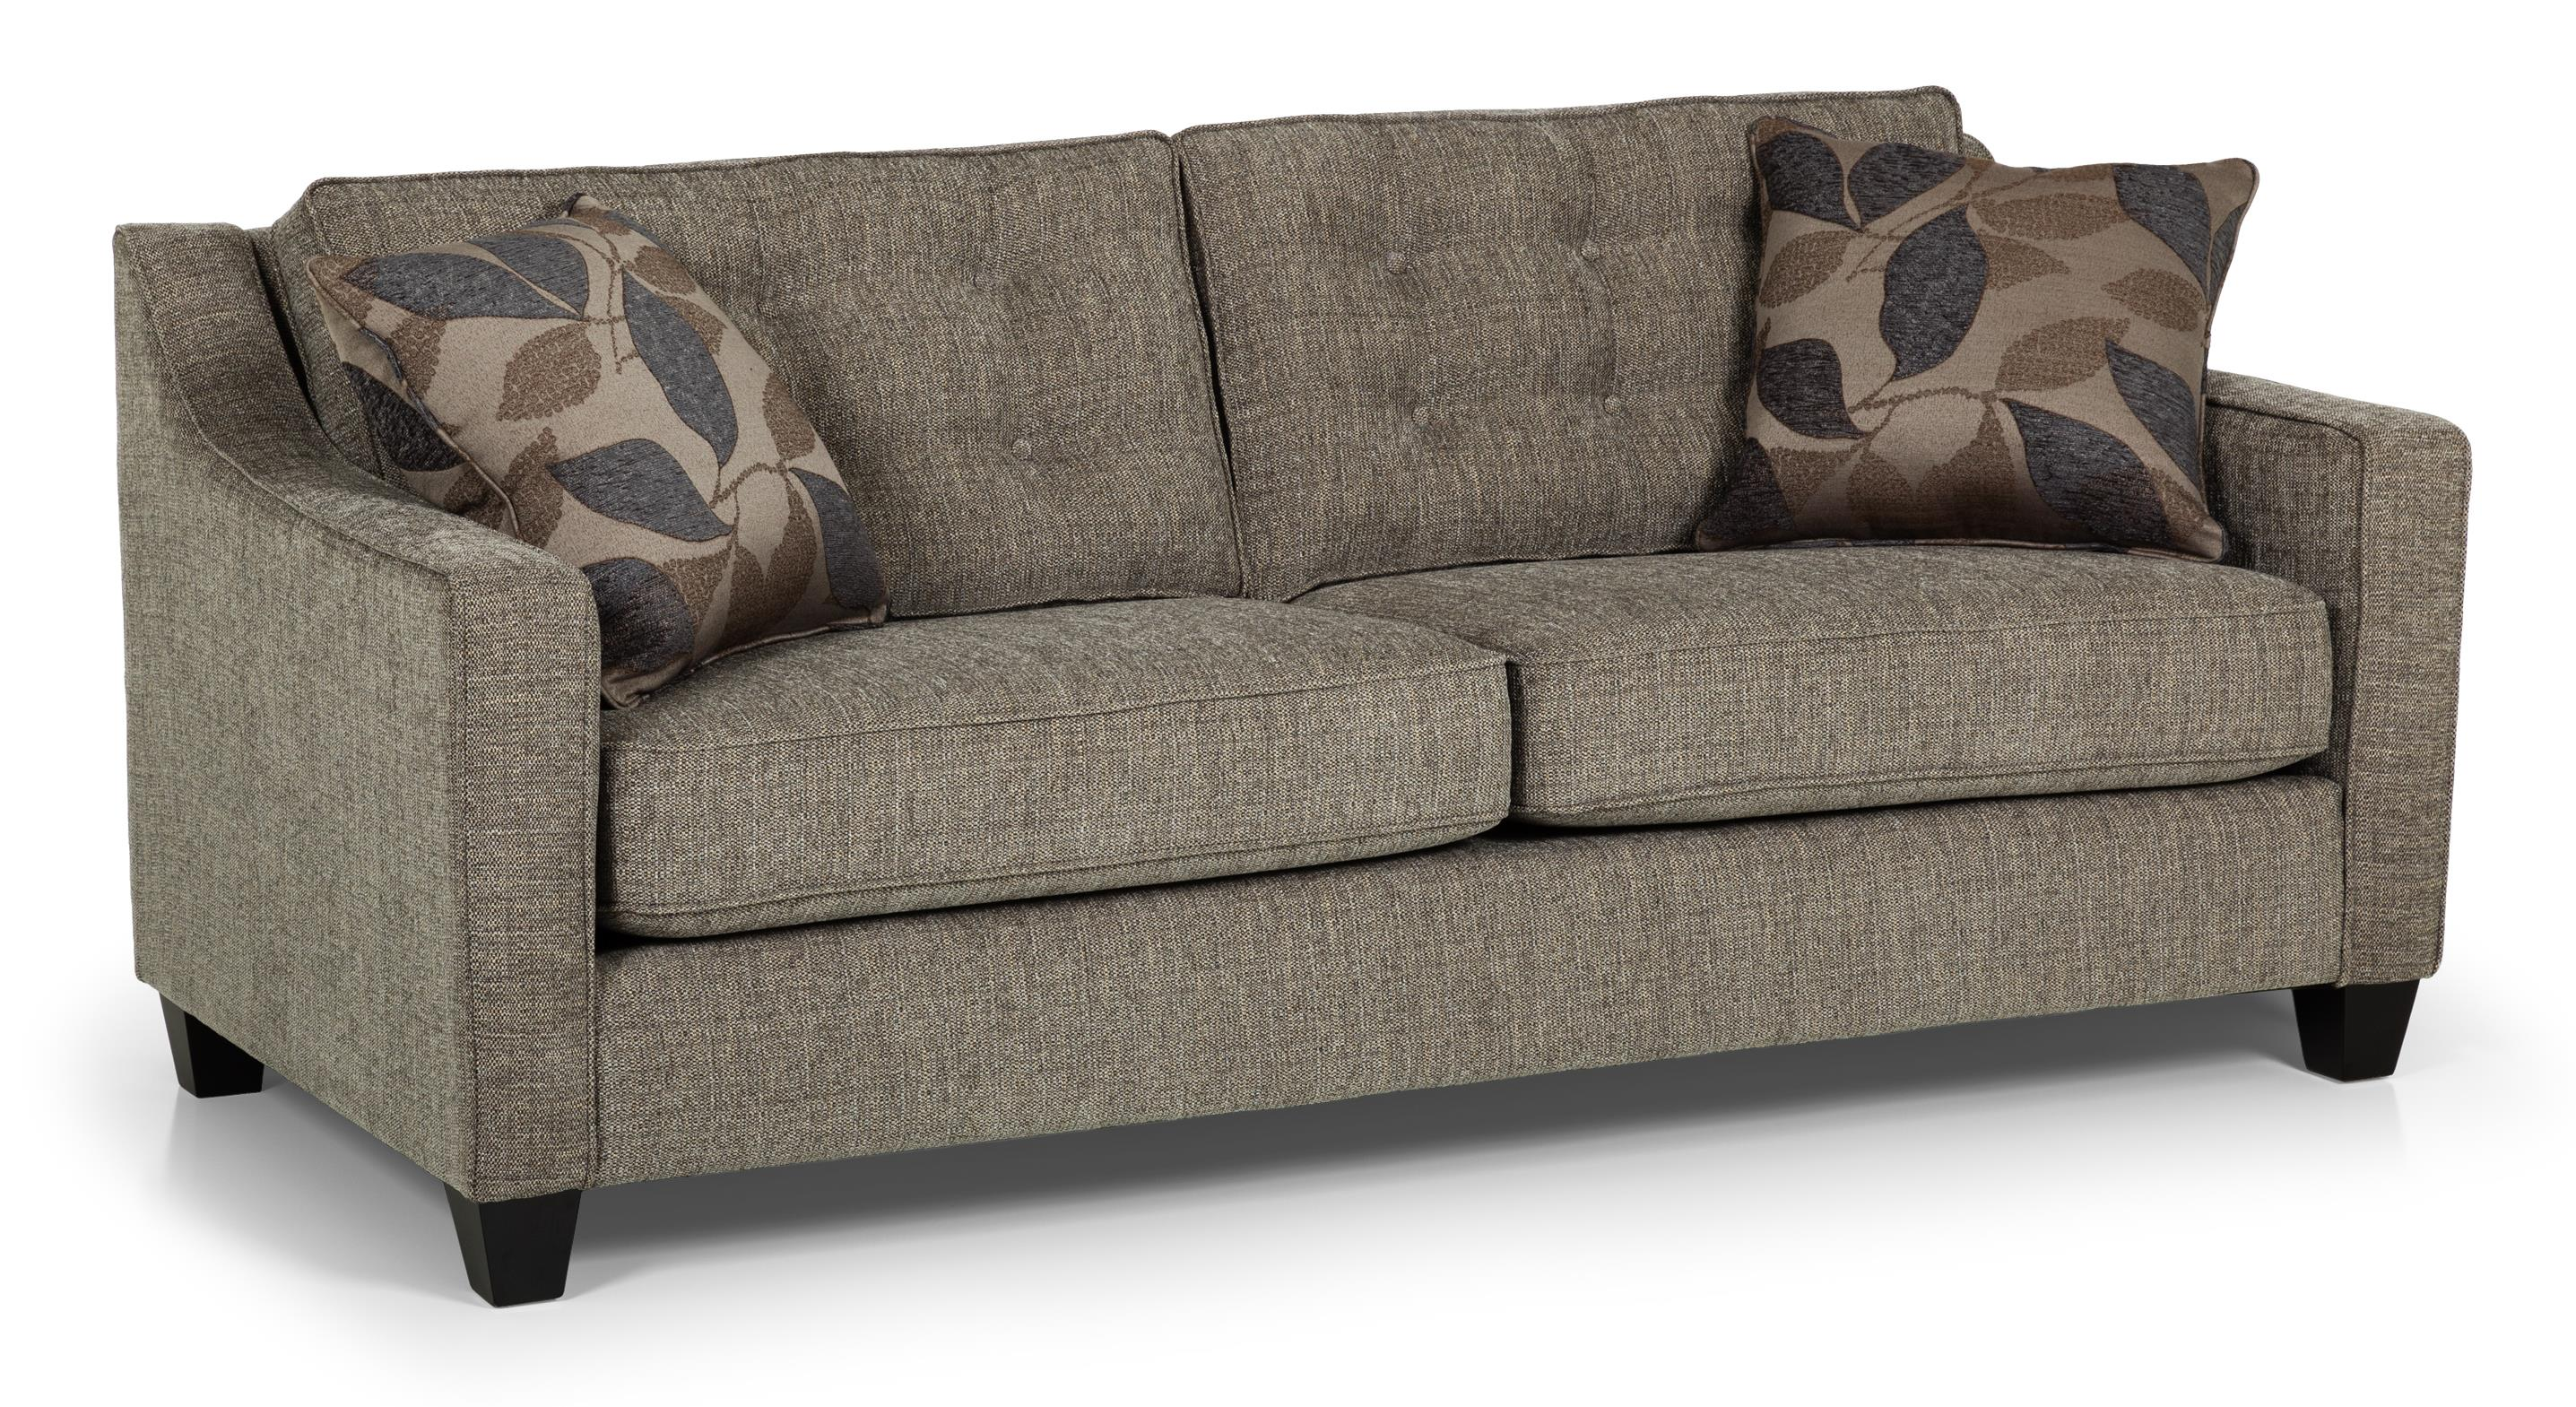 Stanton 177 2-Over-2 Sofa - Item Number: 177-01PA